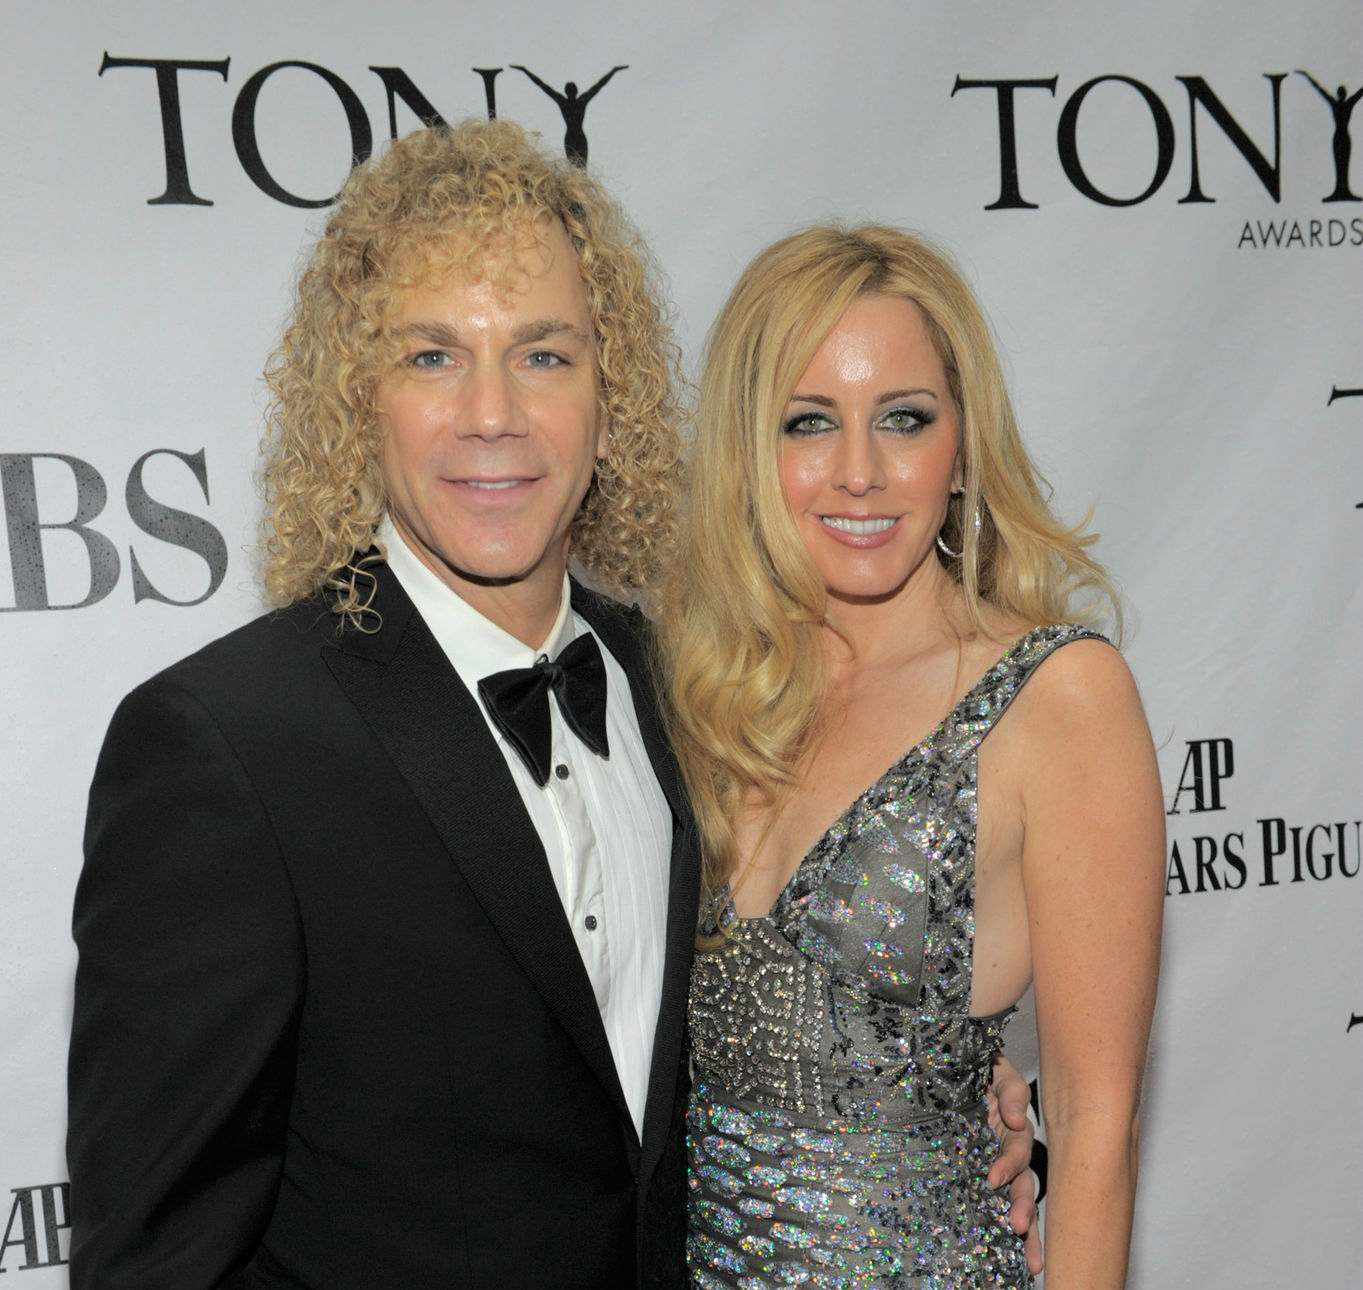 David Bryan and Lexi Quaas attend the 64th Annual Tony Awards at Radio City Music Hall on June 13, 2010 in New York City